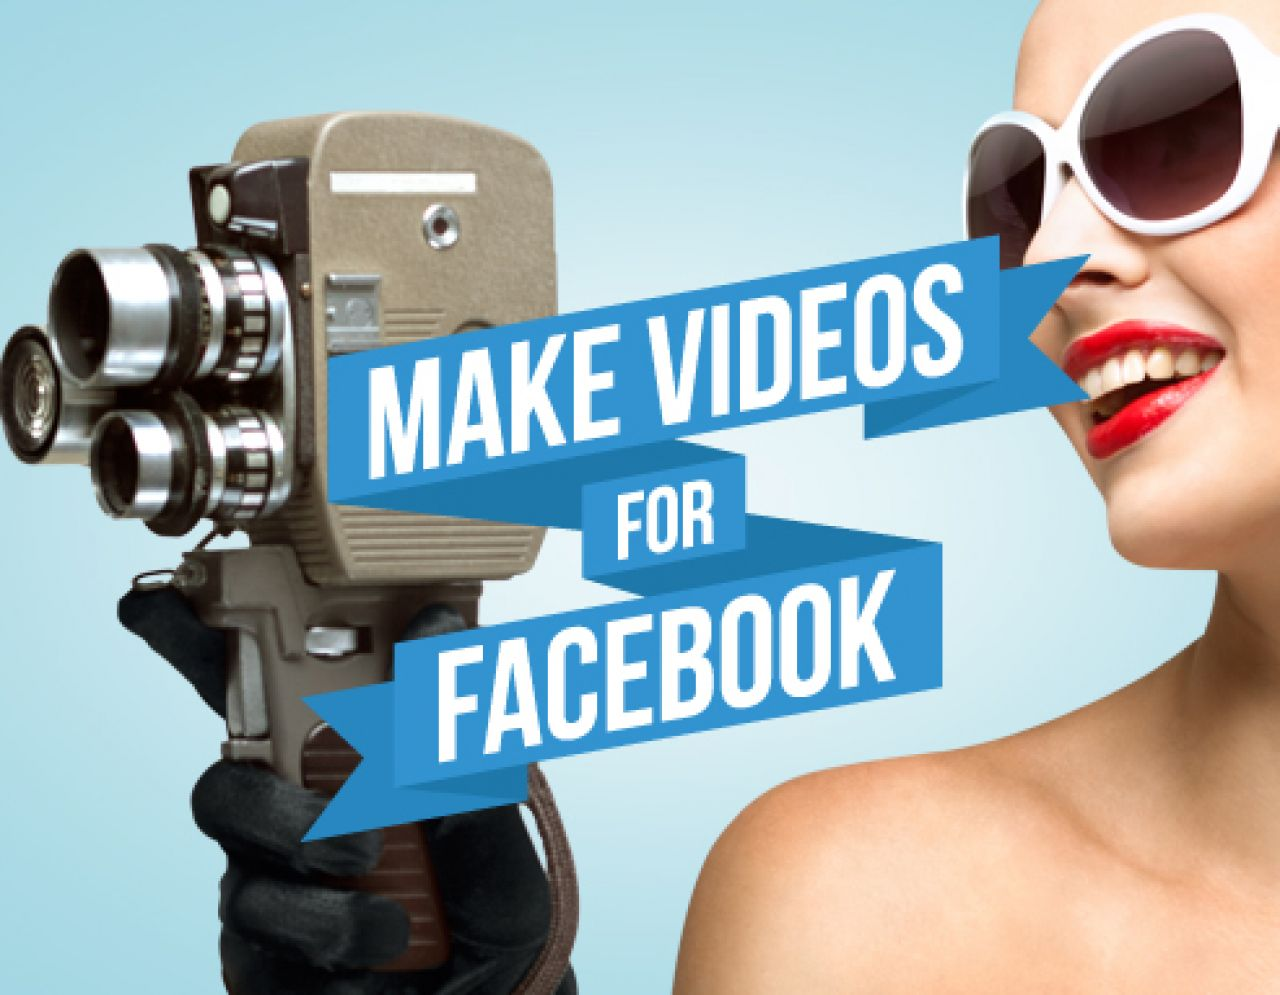 Make videos for facebook